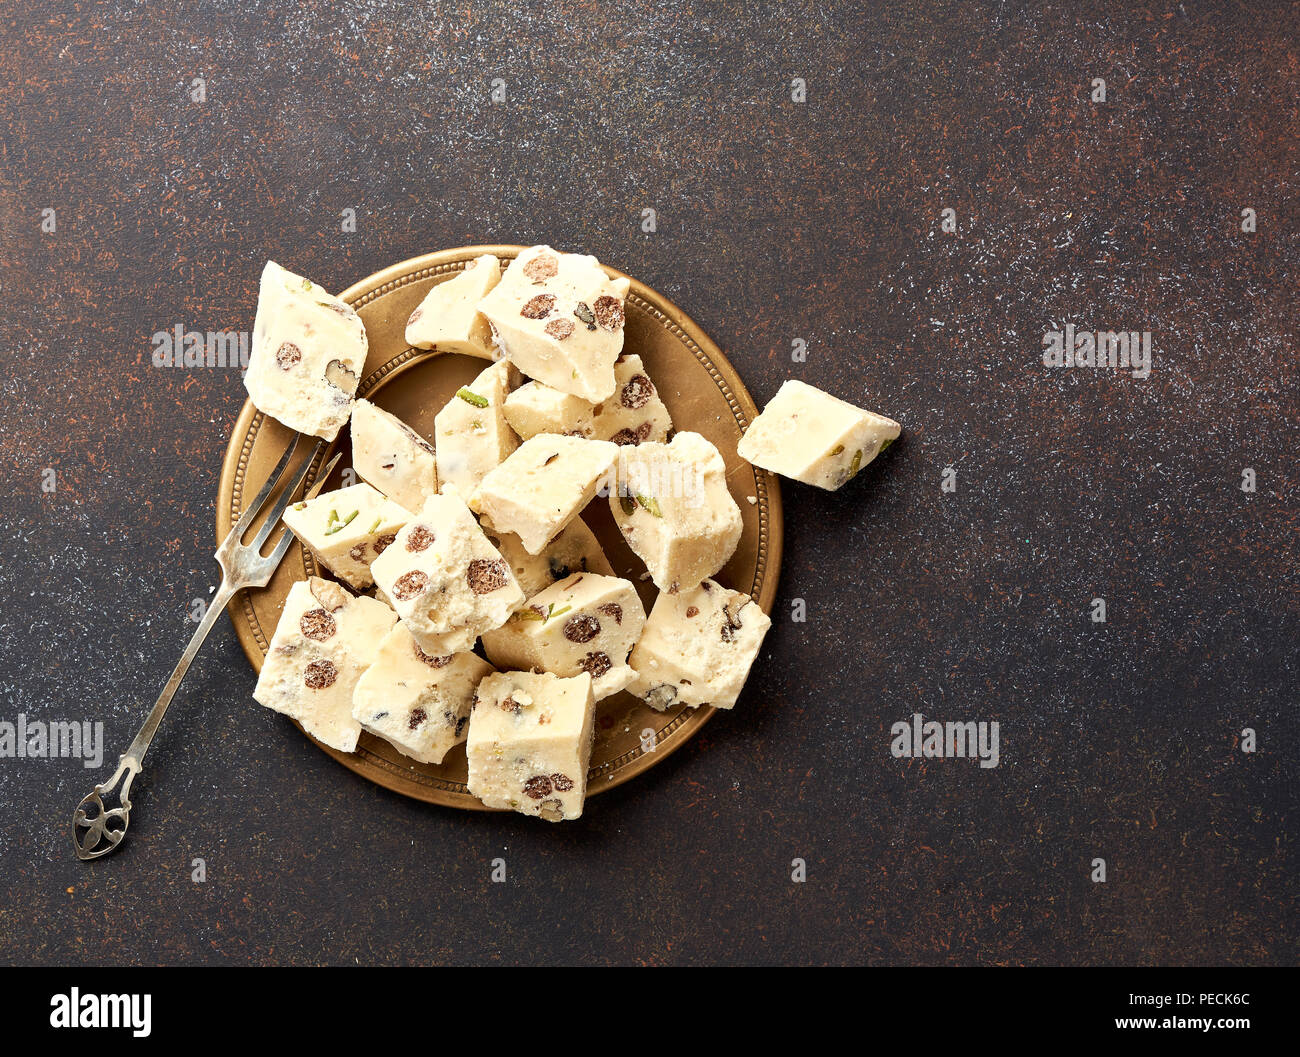 Eastern delicacy. Halva, sweetness, dessert on brown background. - Stock Image